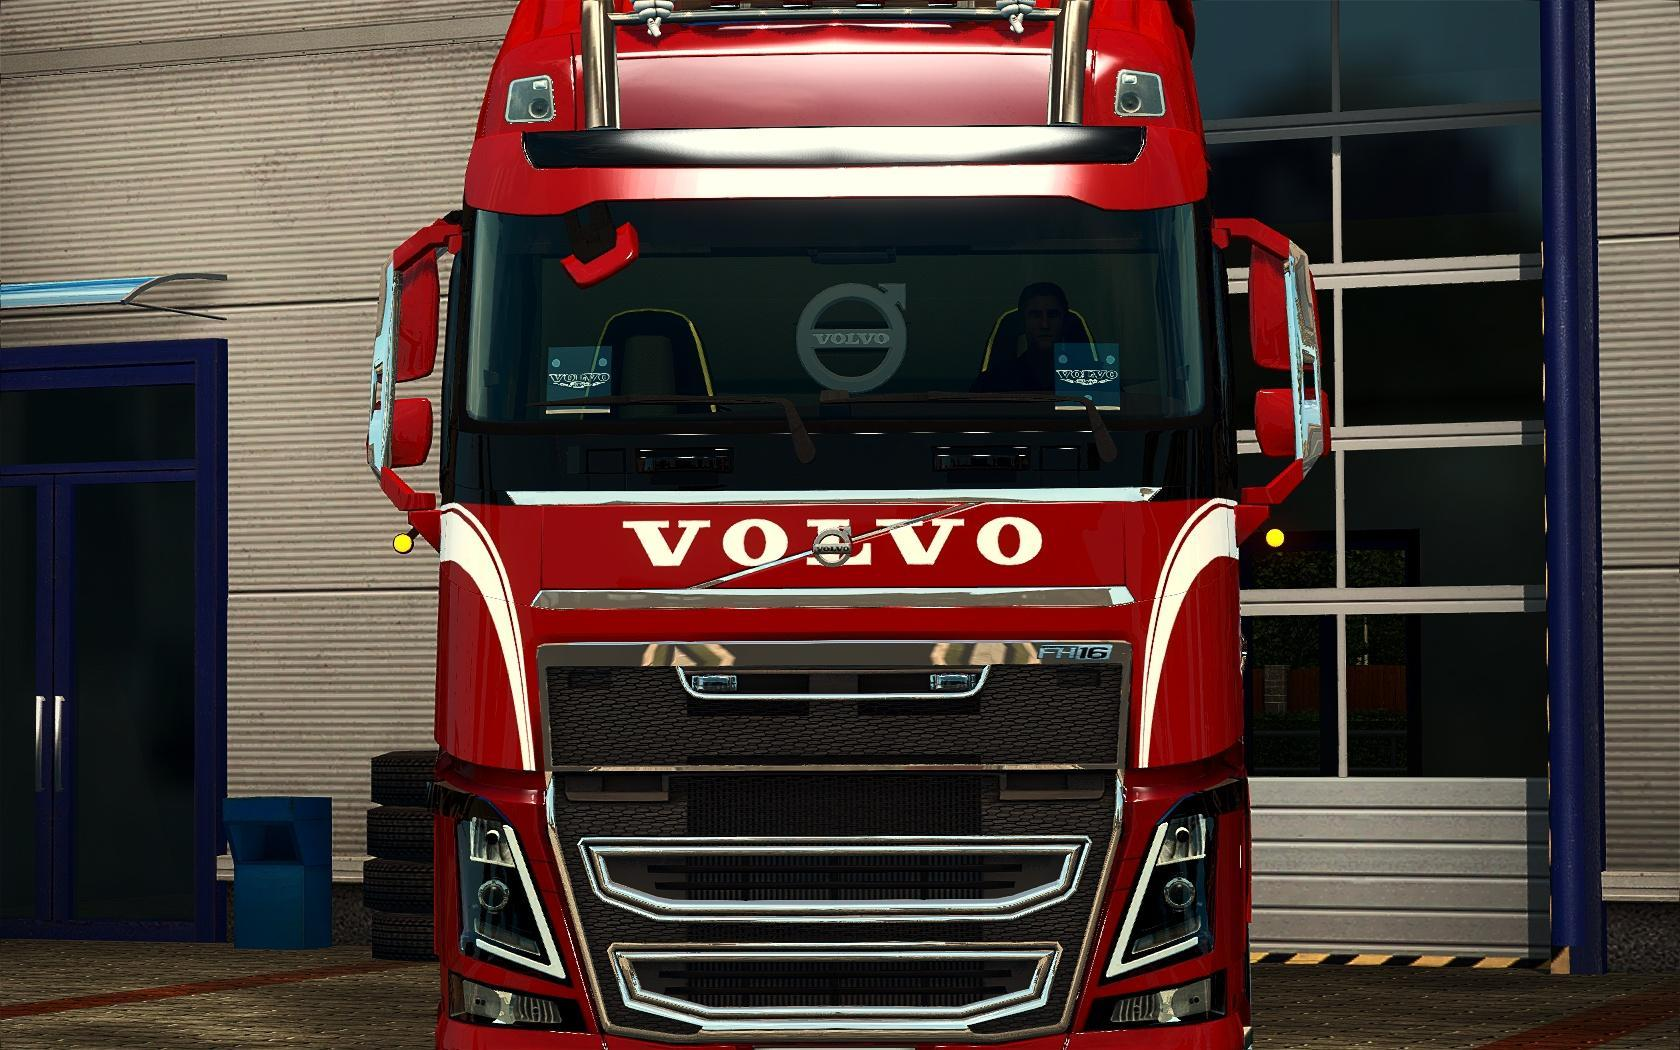 VOLVO FH 2013 [OHAHA] 22.01S (1.28) TRUCK MOD -Euro Truck Simulator 2 Mods